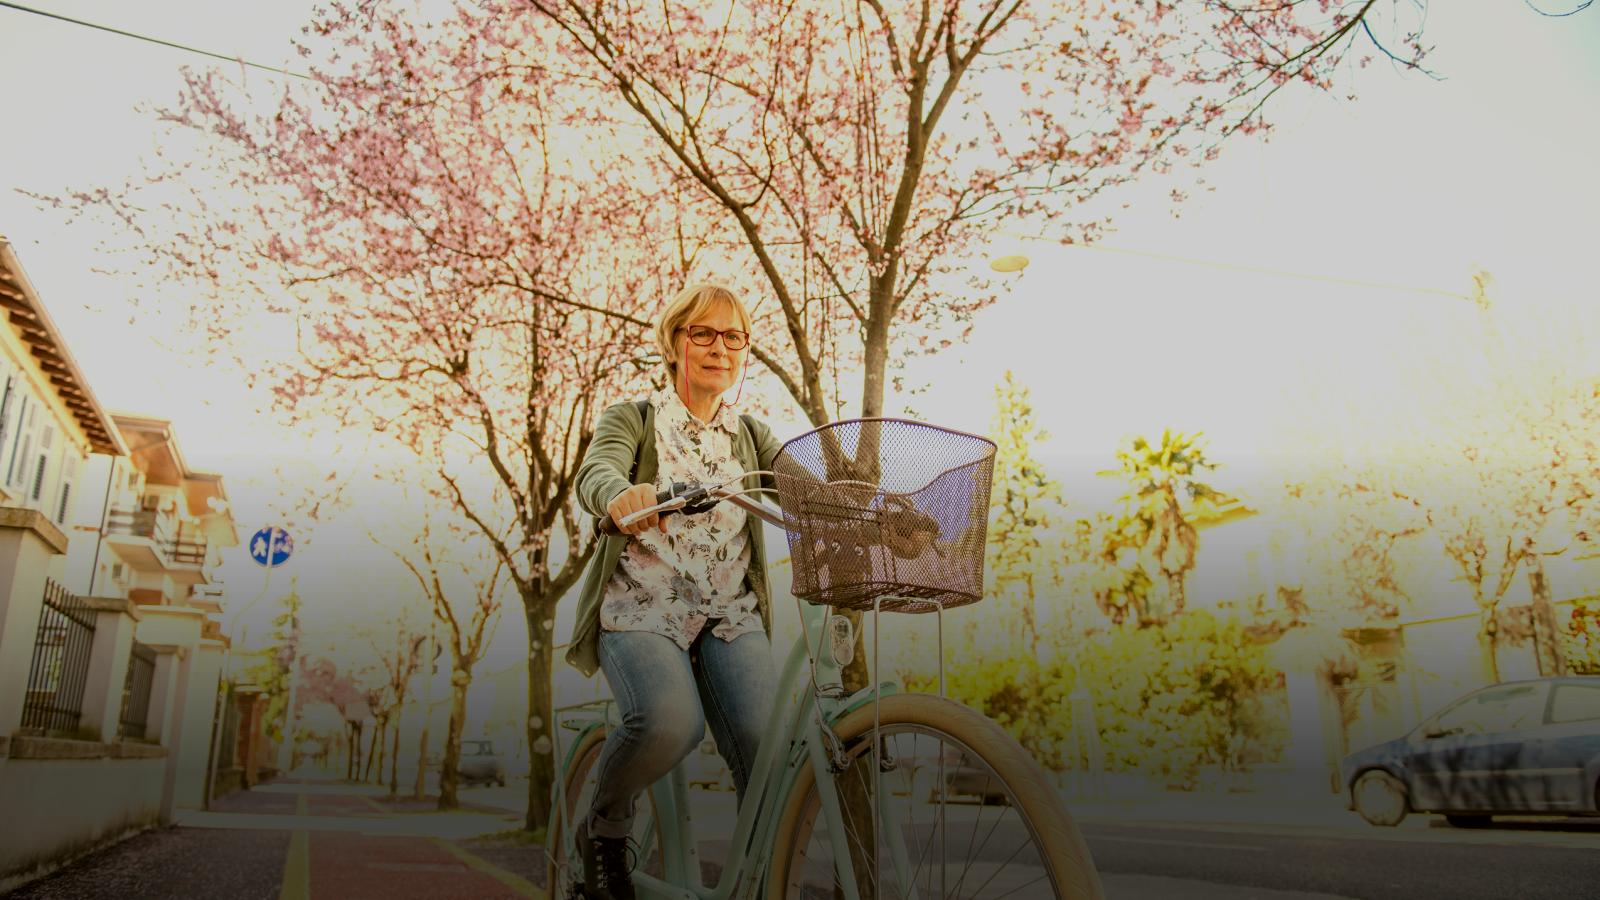 woman cycling along street with cherry blossom